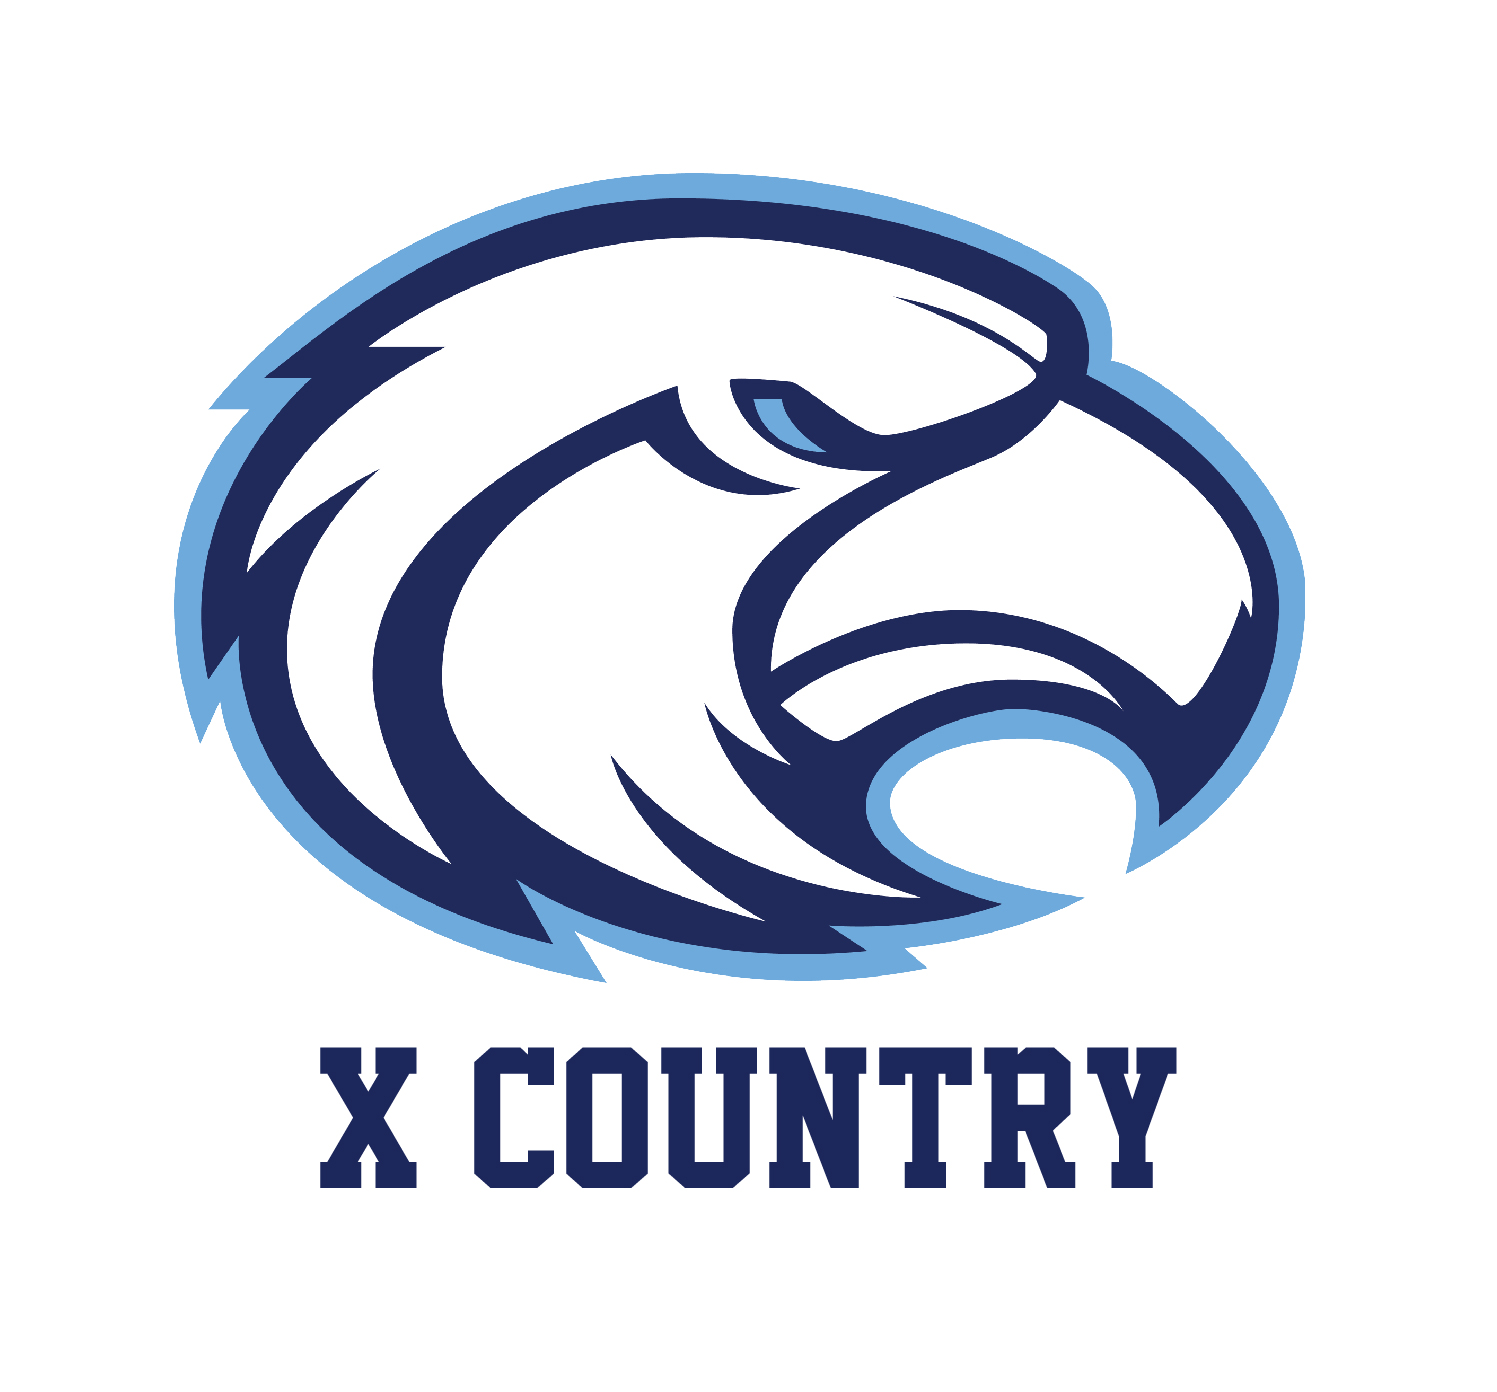 XC Tryout/Summer Info